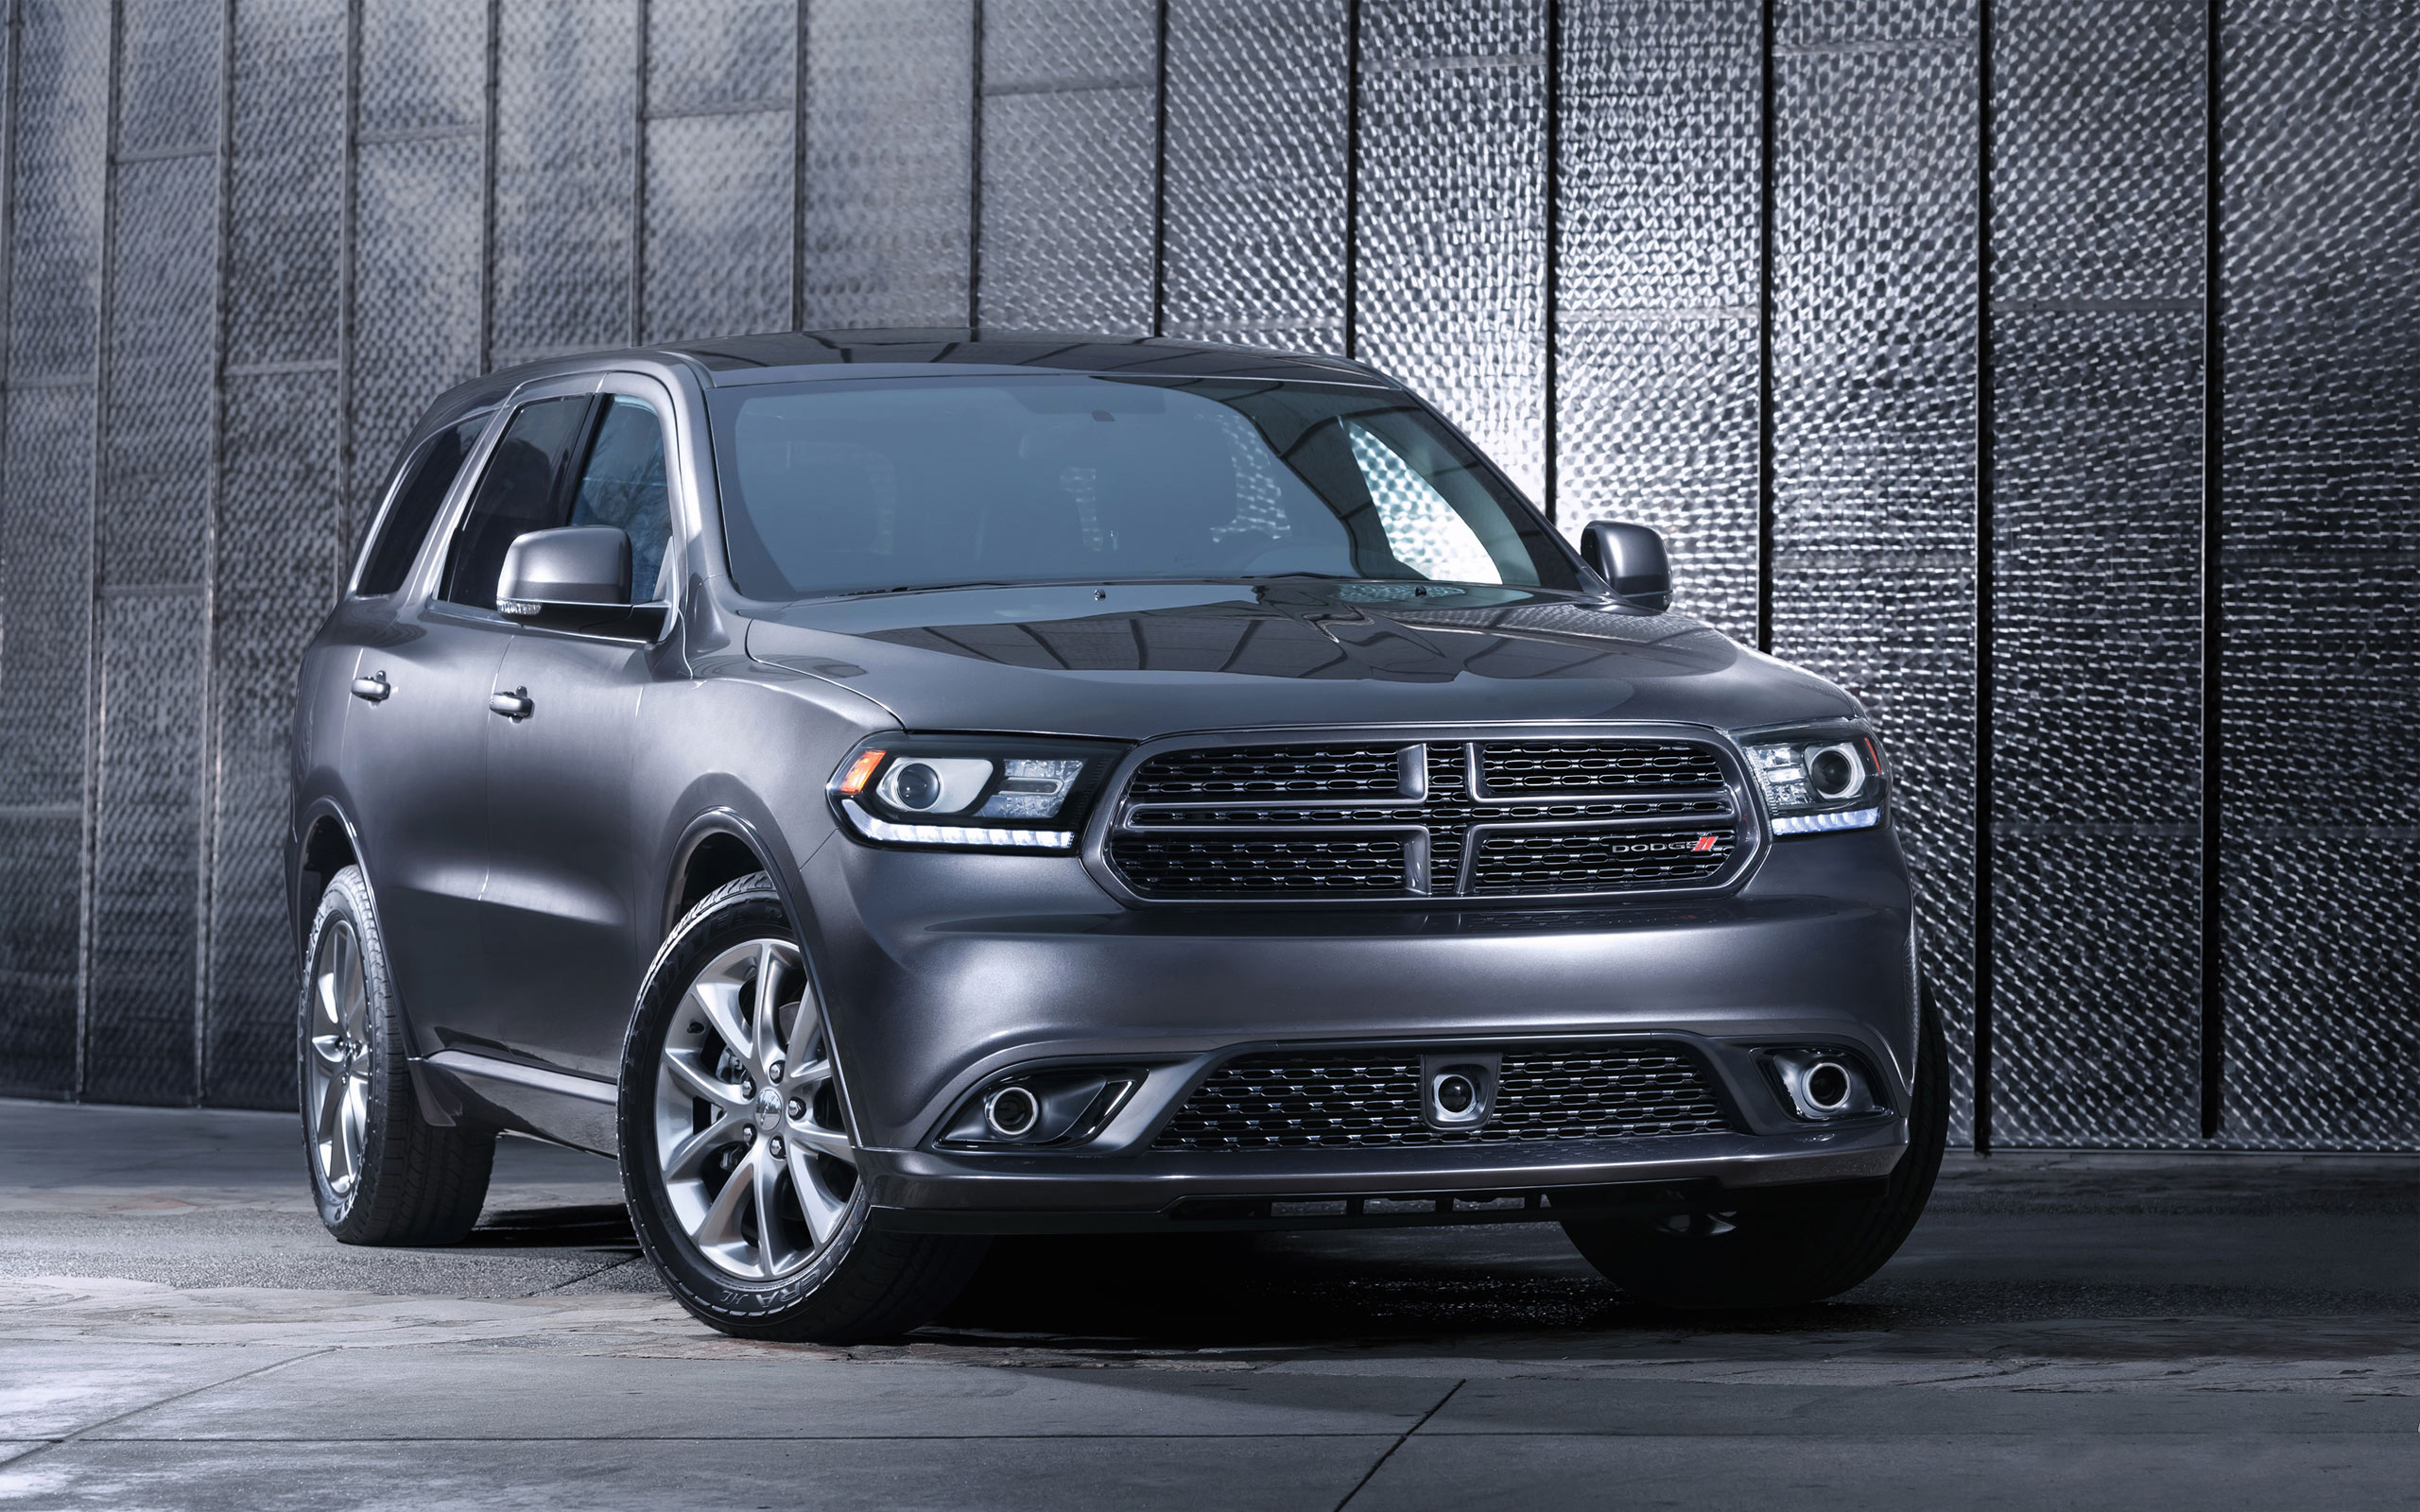 dodge durango wallpaper - photo #7